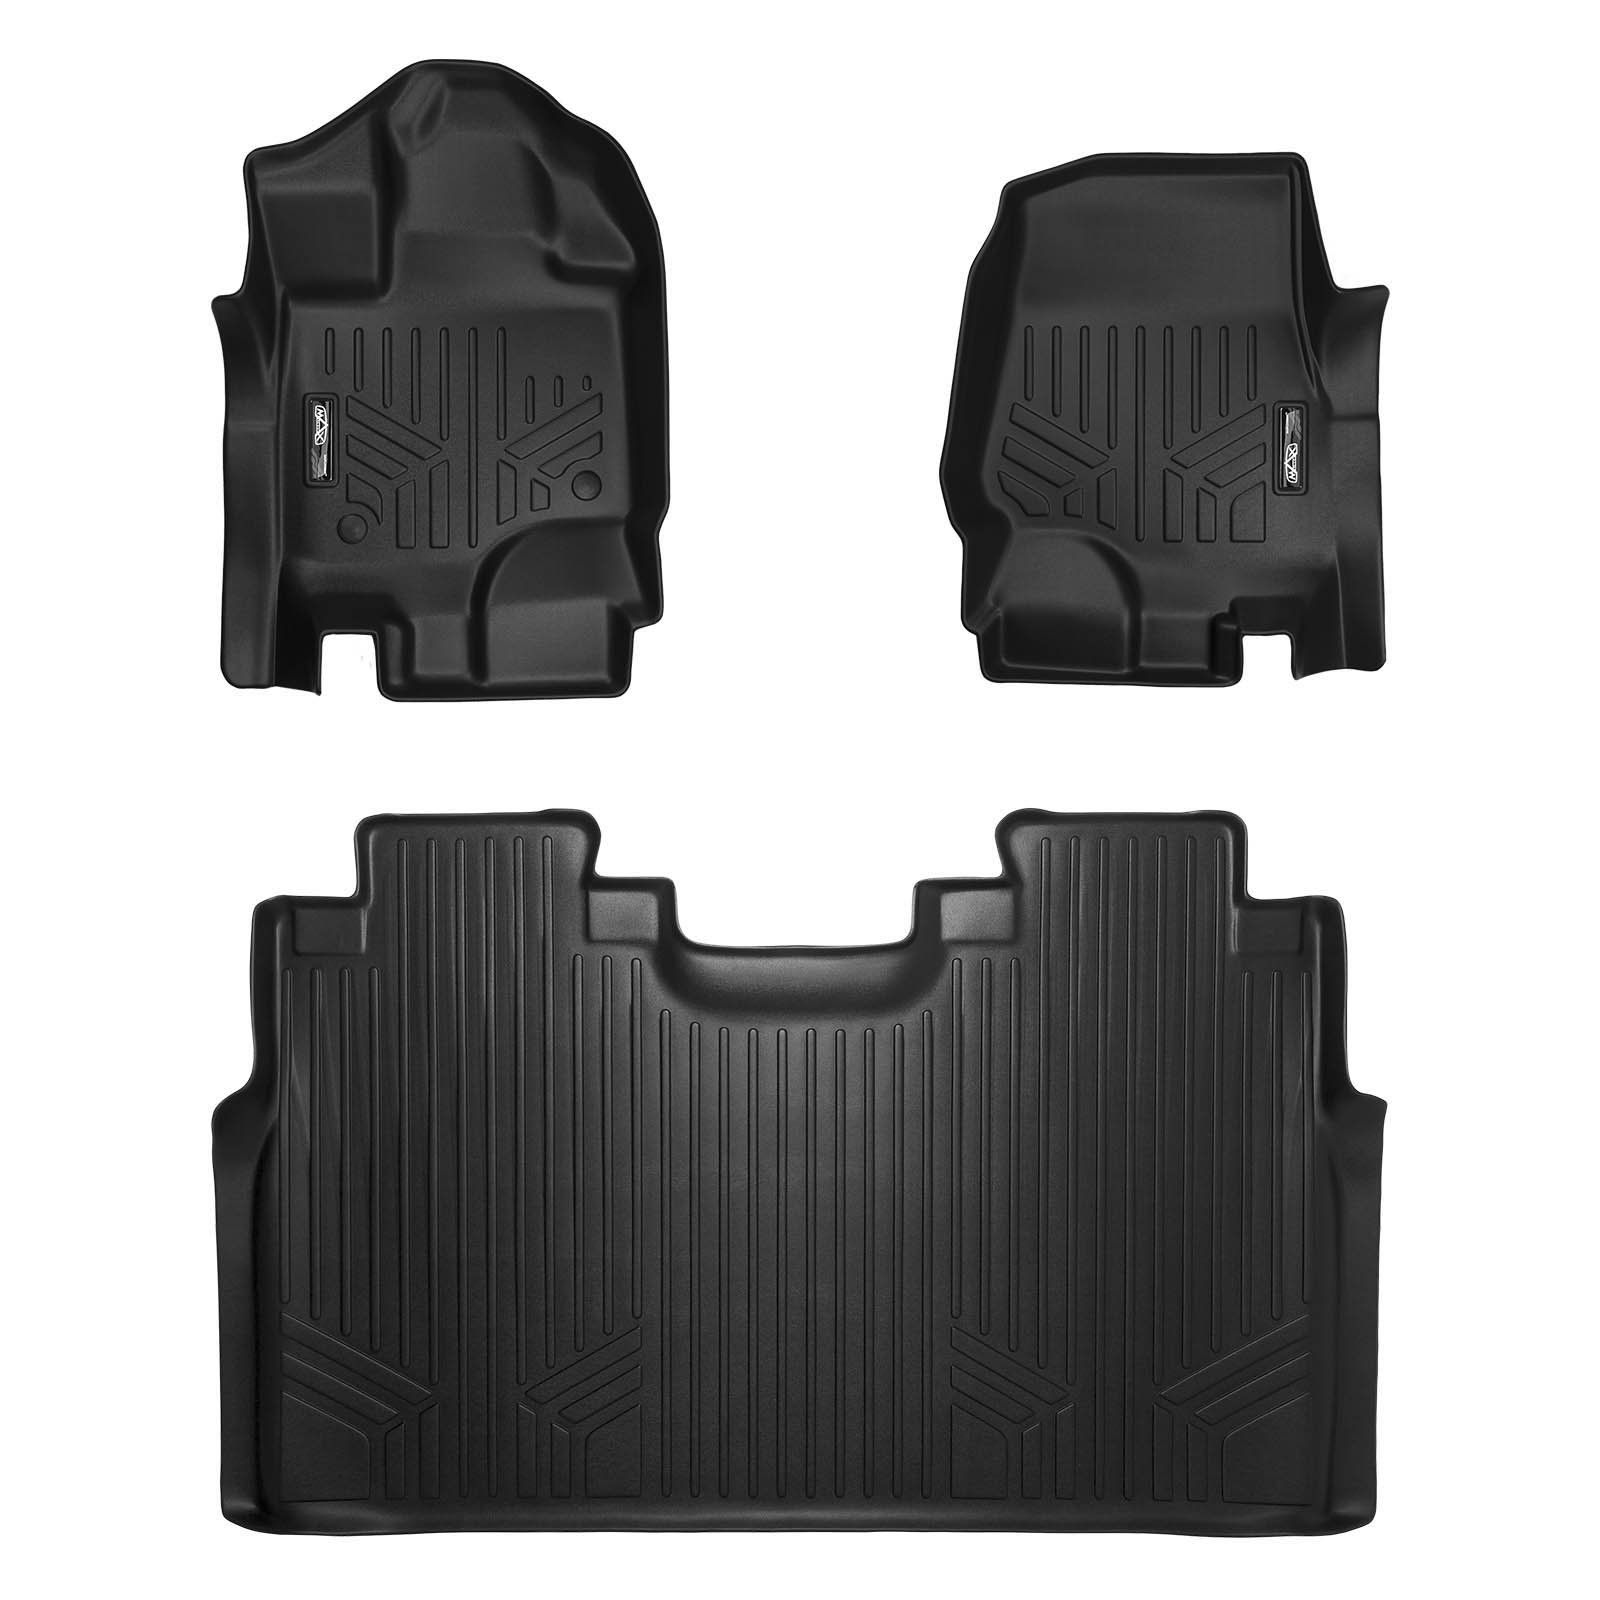 Maxliner Floor Mats 2 Row Liner Set Black For 2015 2018 Ford F 150 Supercrew Cab With 1st Row Bucket Seats More Info Could Be Fo Floor Mats Flooring Bucket Seats